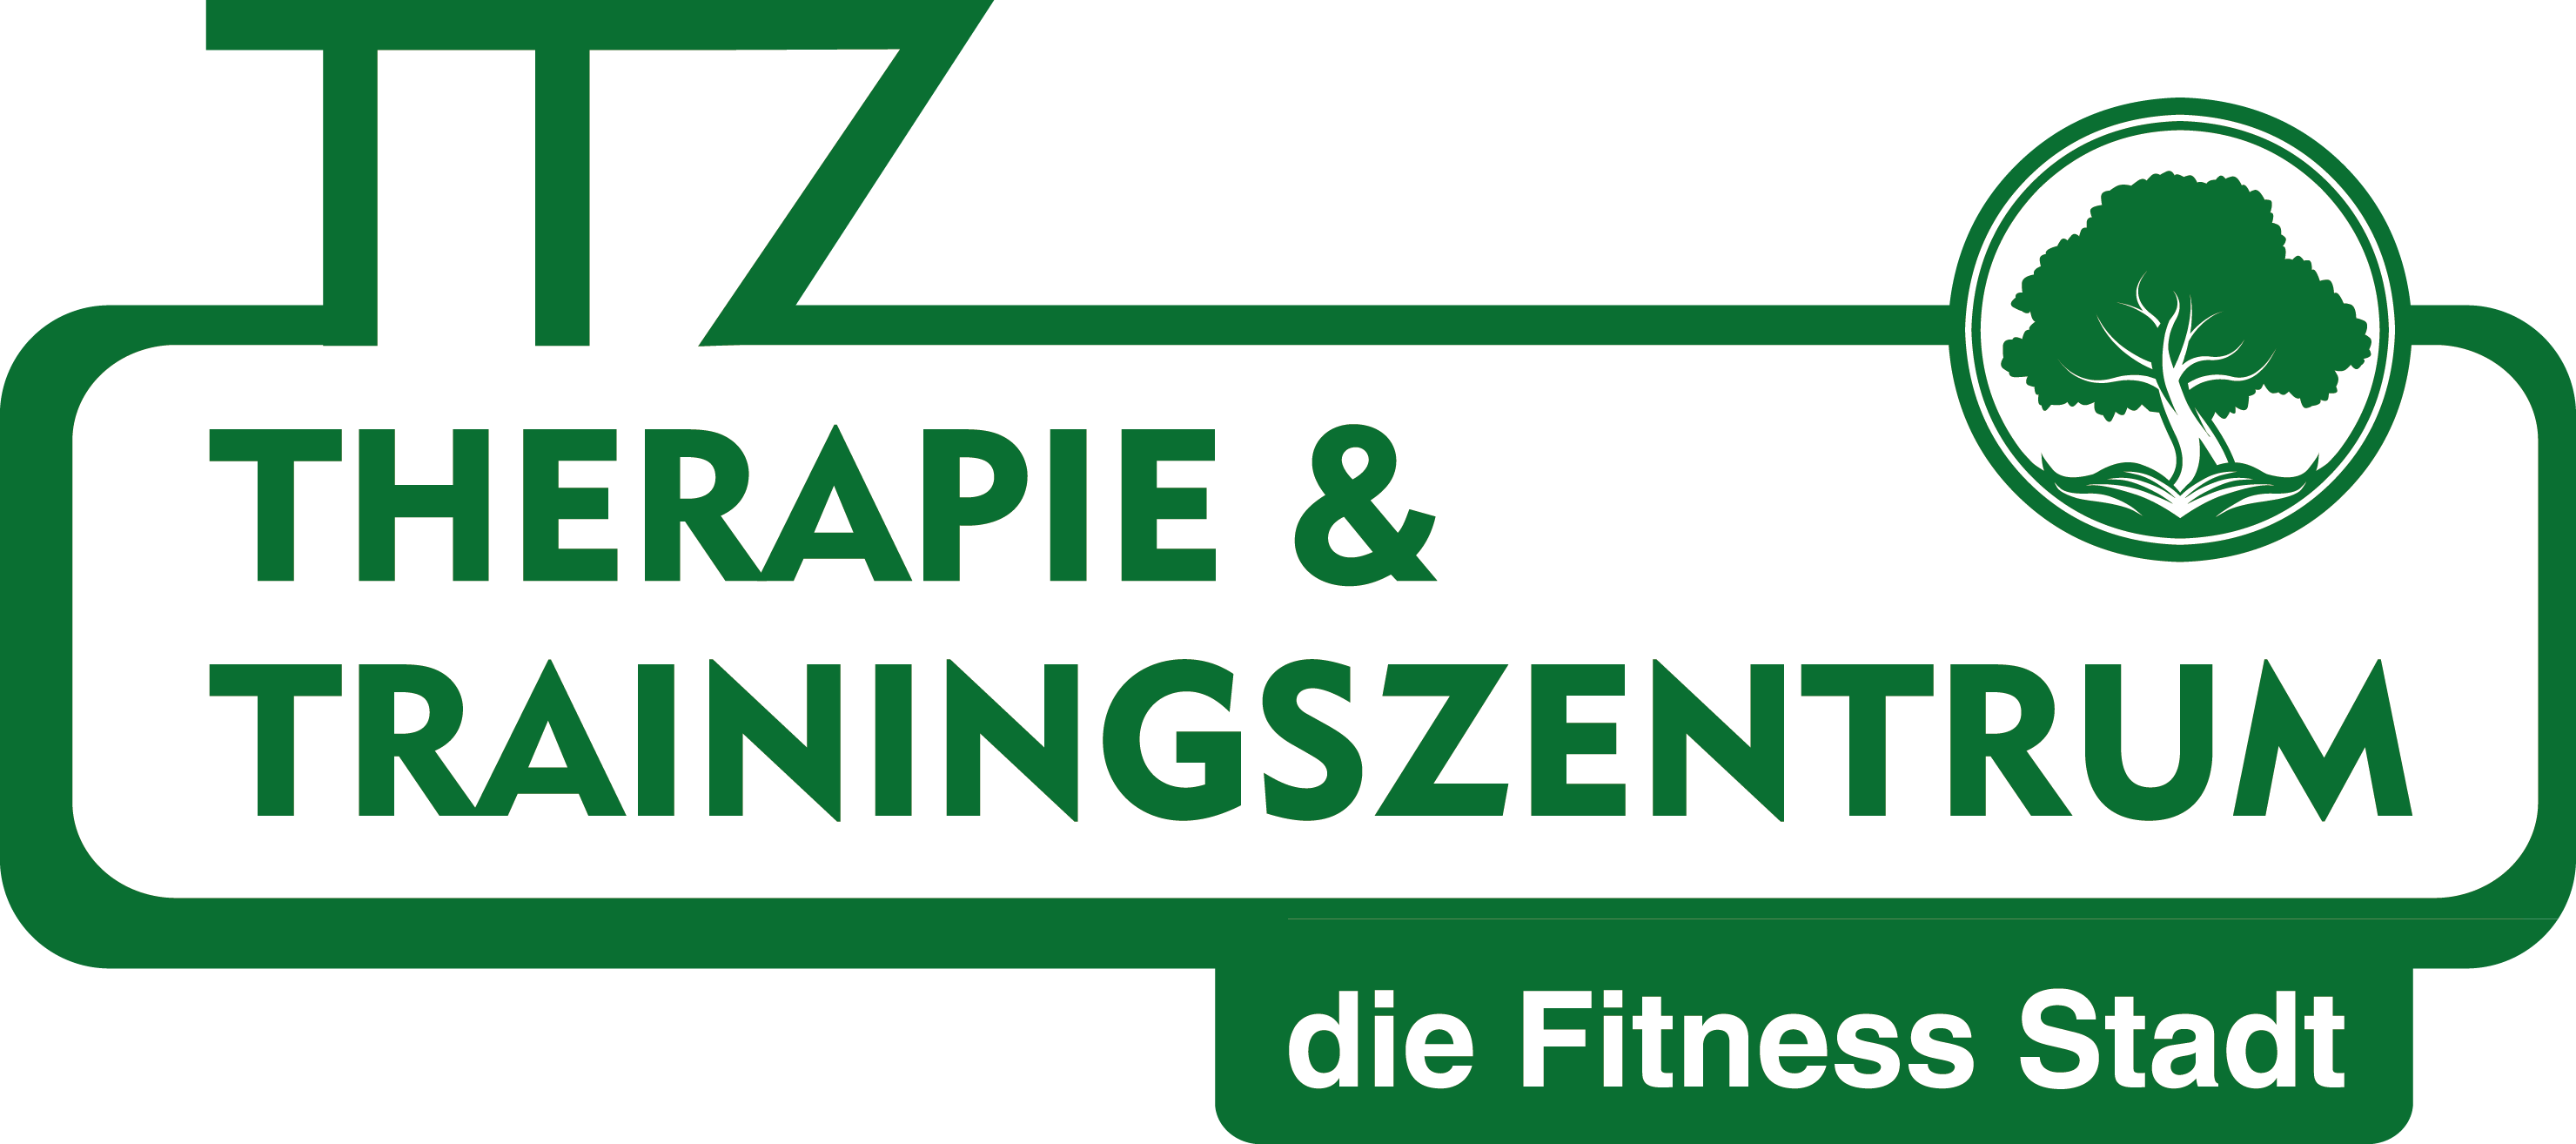 therapie-trainingszentrum.de